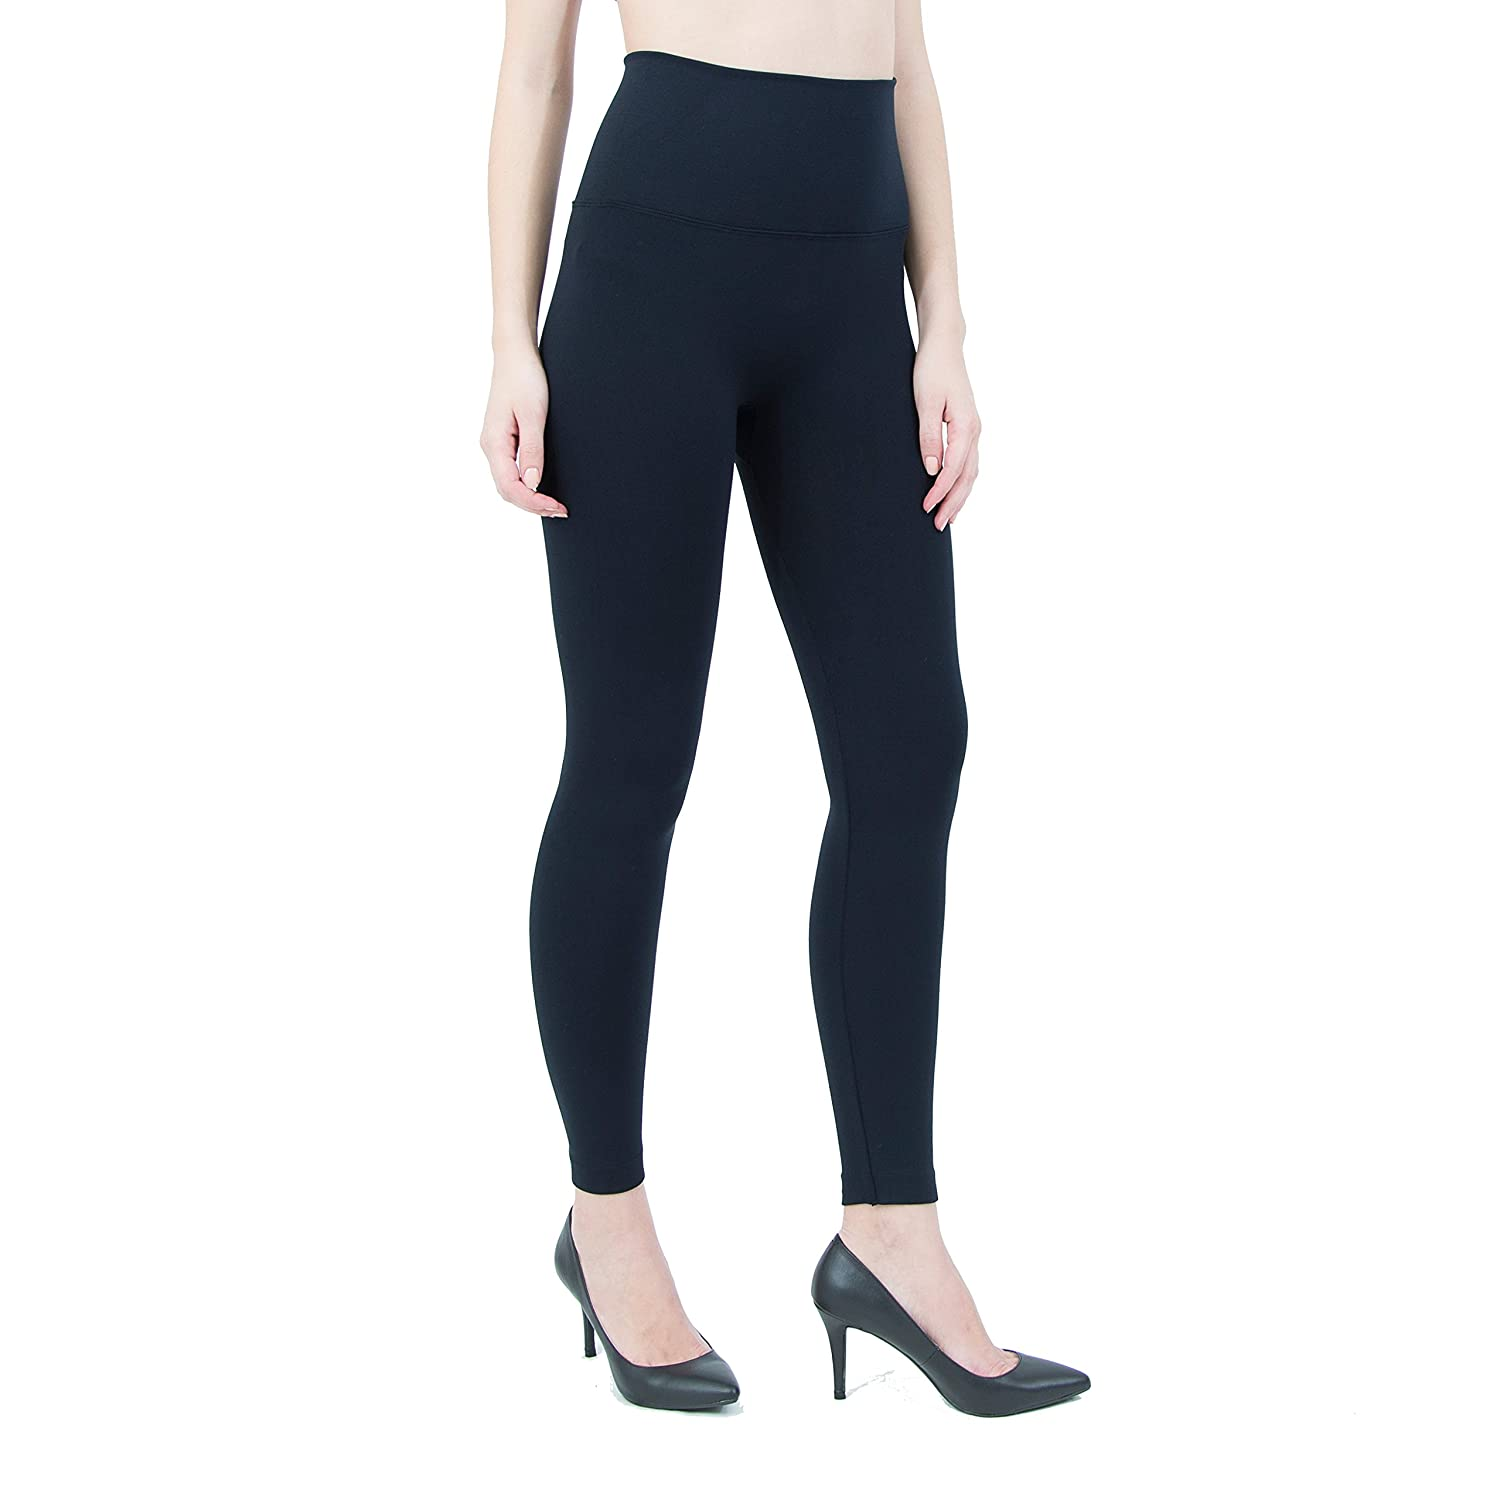 066e2e1fbeef6 INDERO Fleece Lined Leggings with High Waist at Amazon Women's Clothing  store: